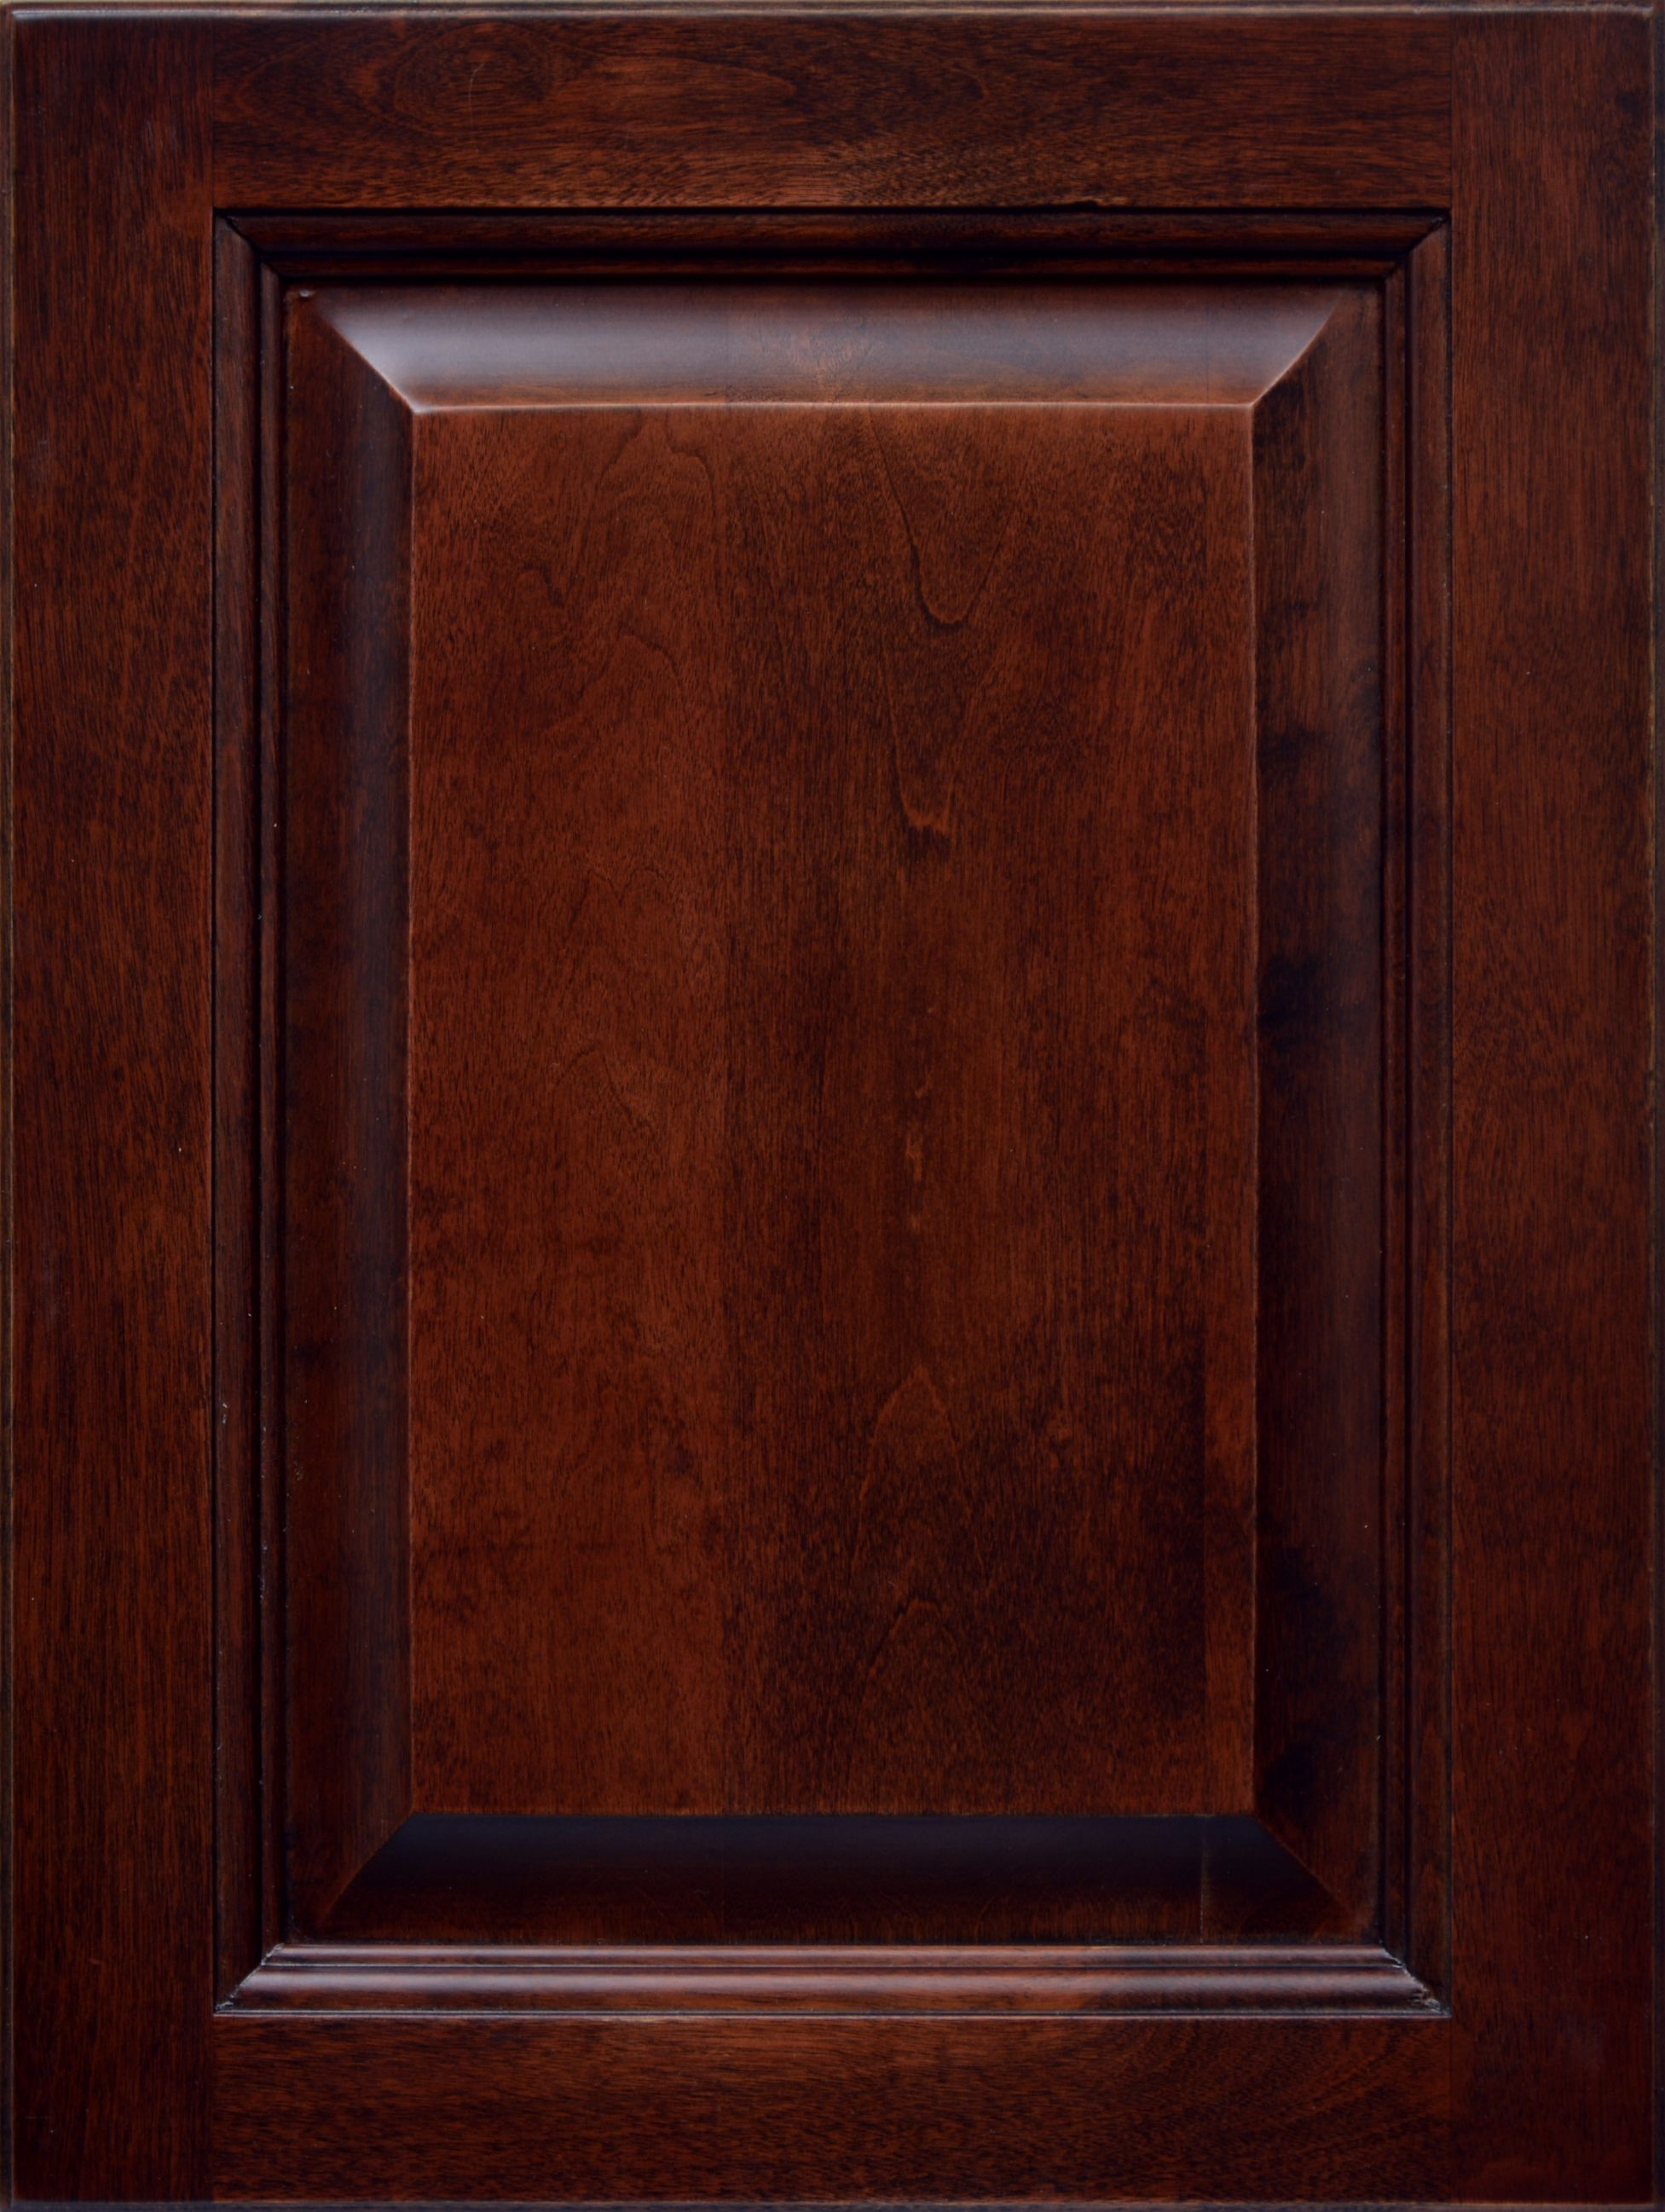 New Cherry Cabinet Door Sample Rta Cabinets, Cherry Cabinets, Plywood  Shelves, Soft Close